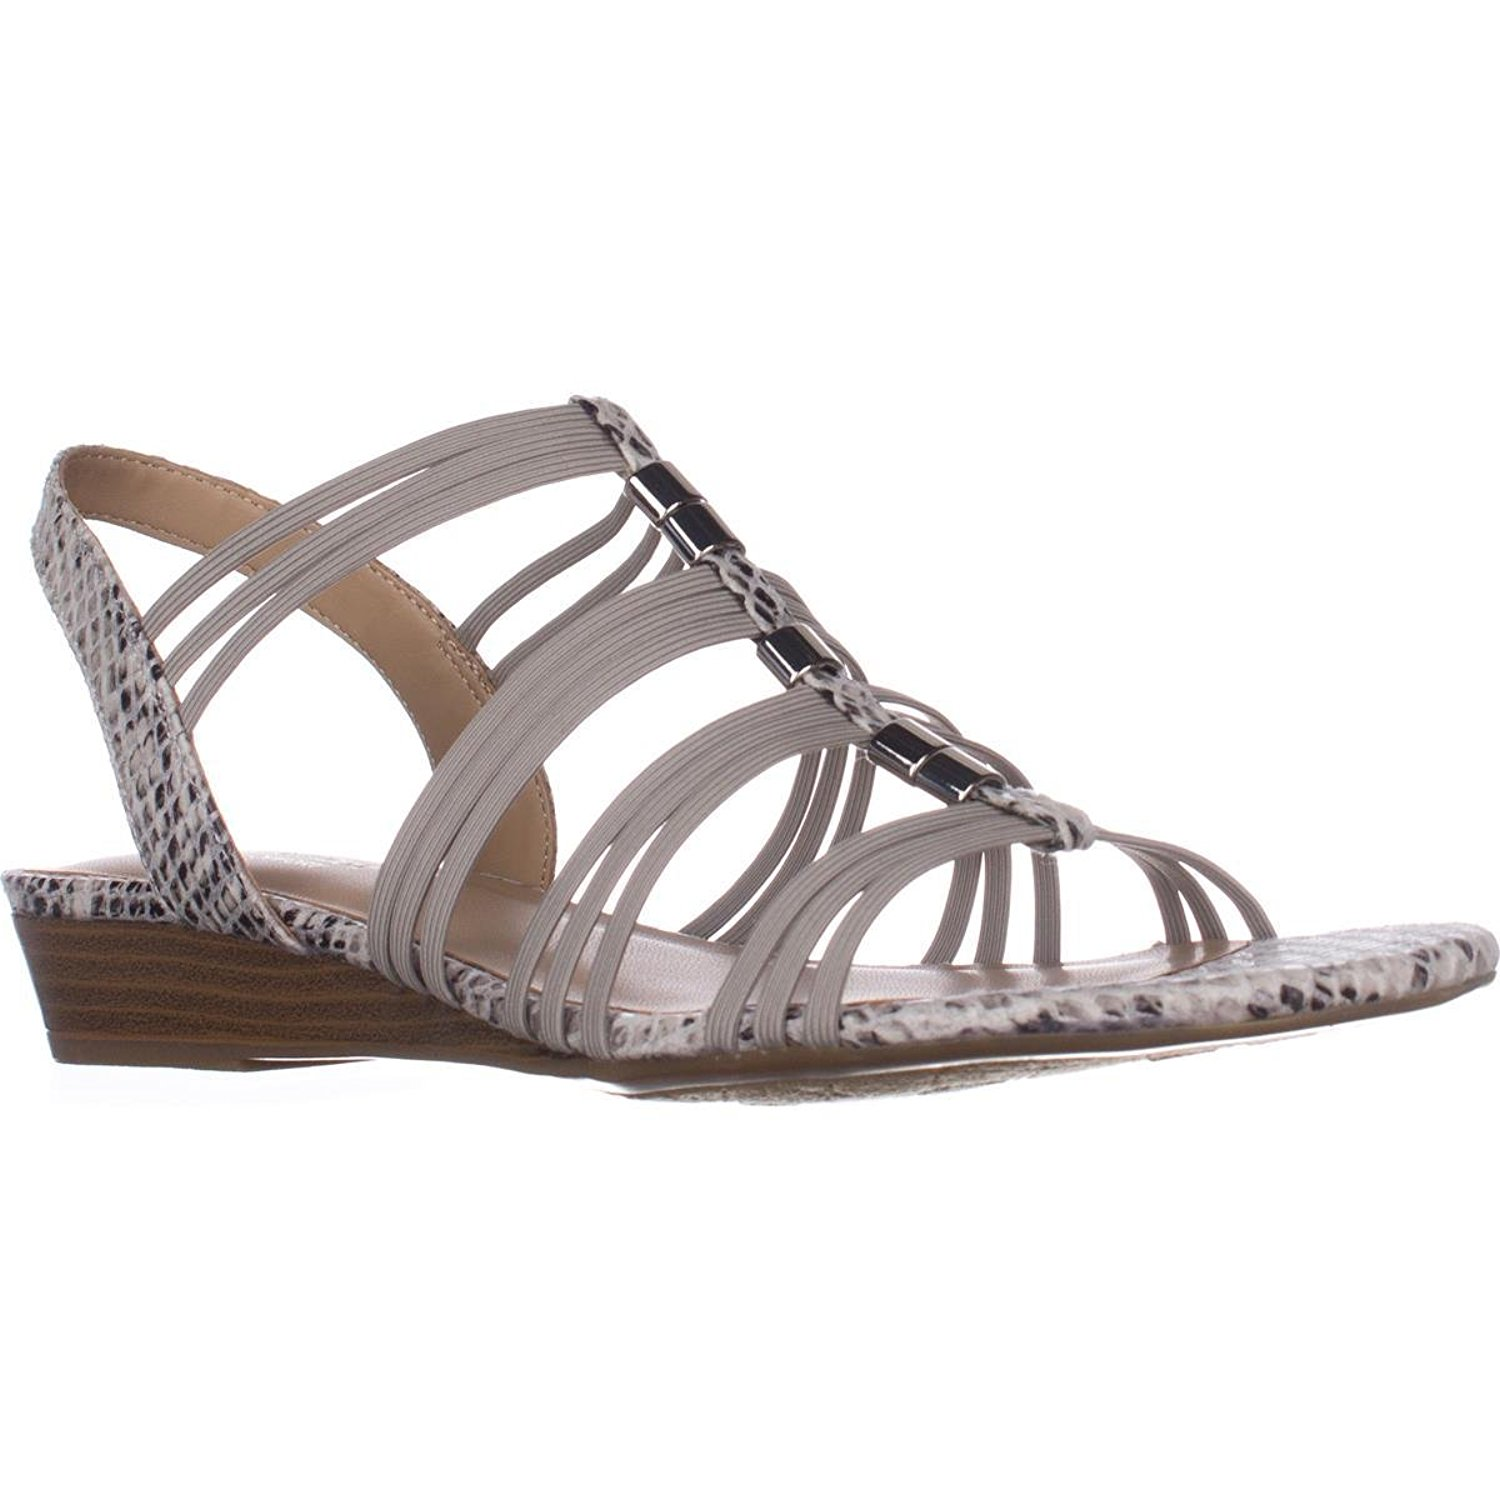 Naturalizer Womens Jilly Fabric Open Toe Casual Wedged Sandals by Naturalizer